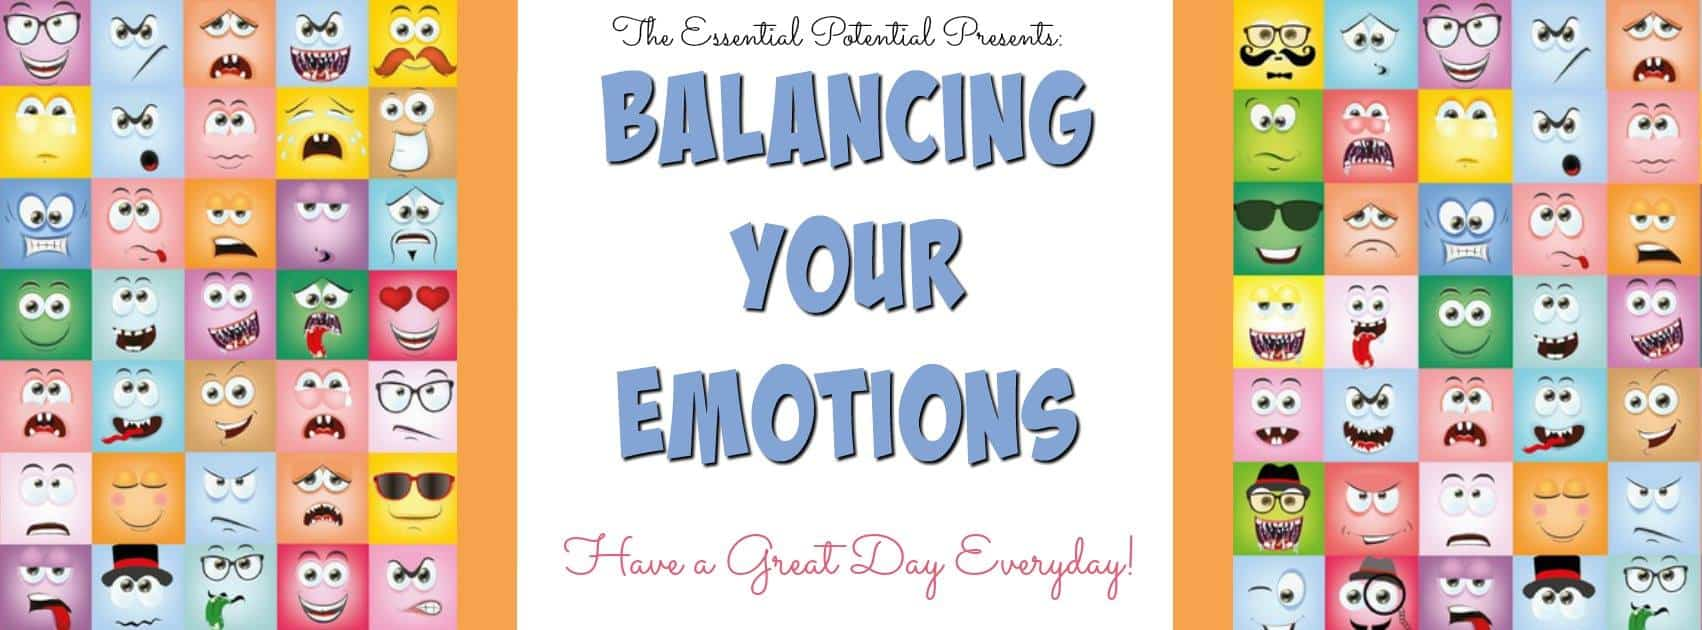 Balancing Your Emotions Naturally